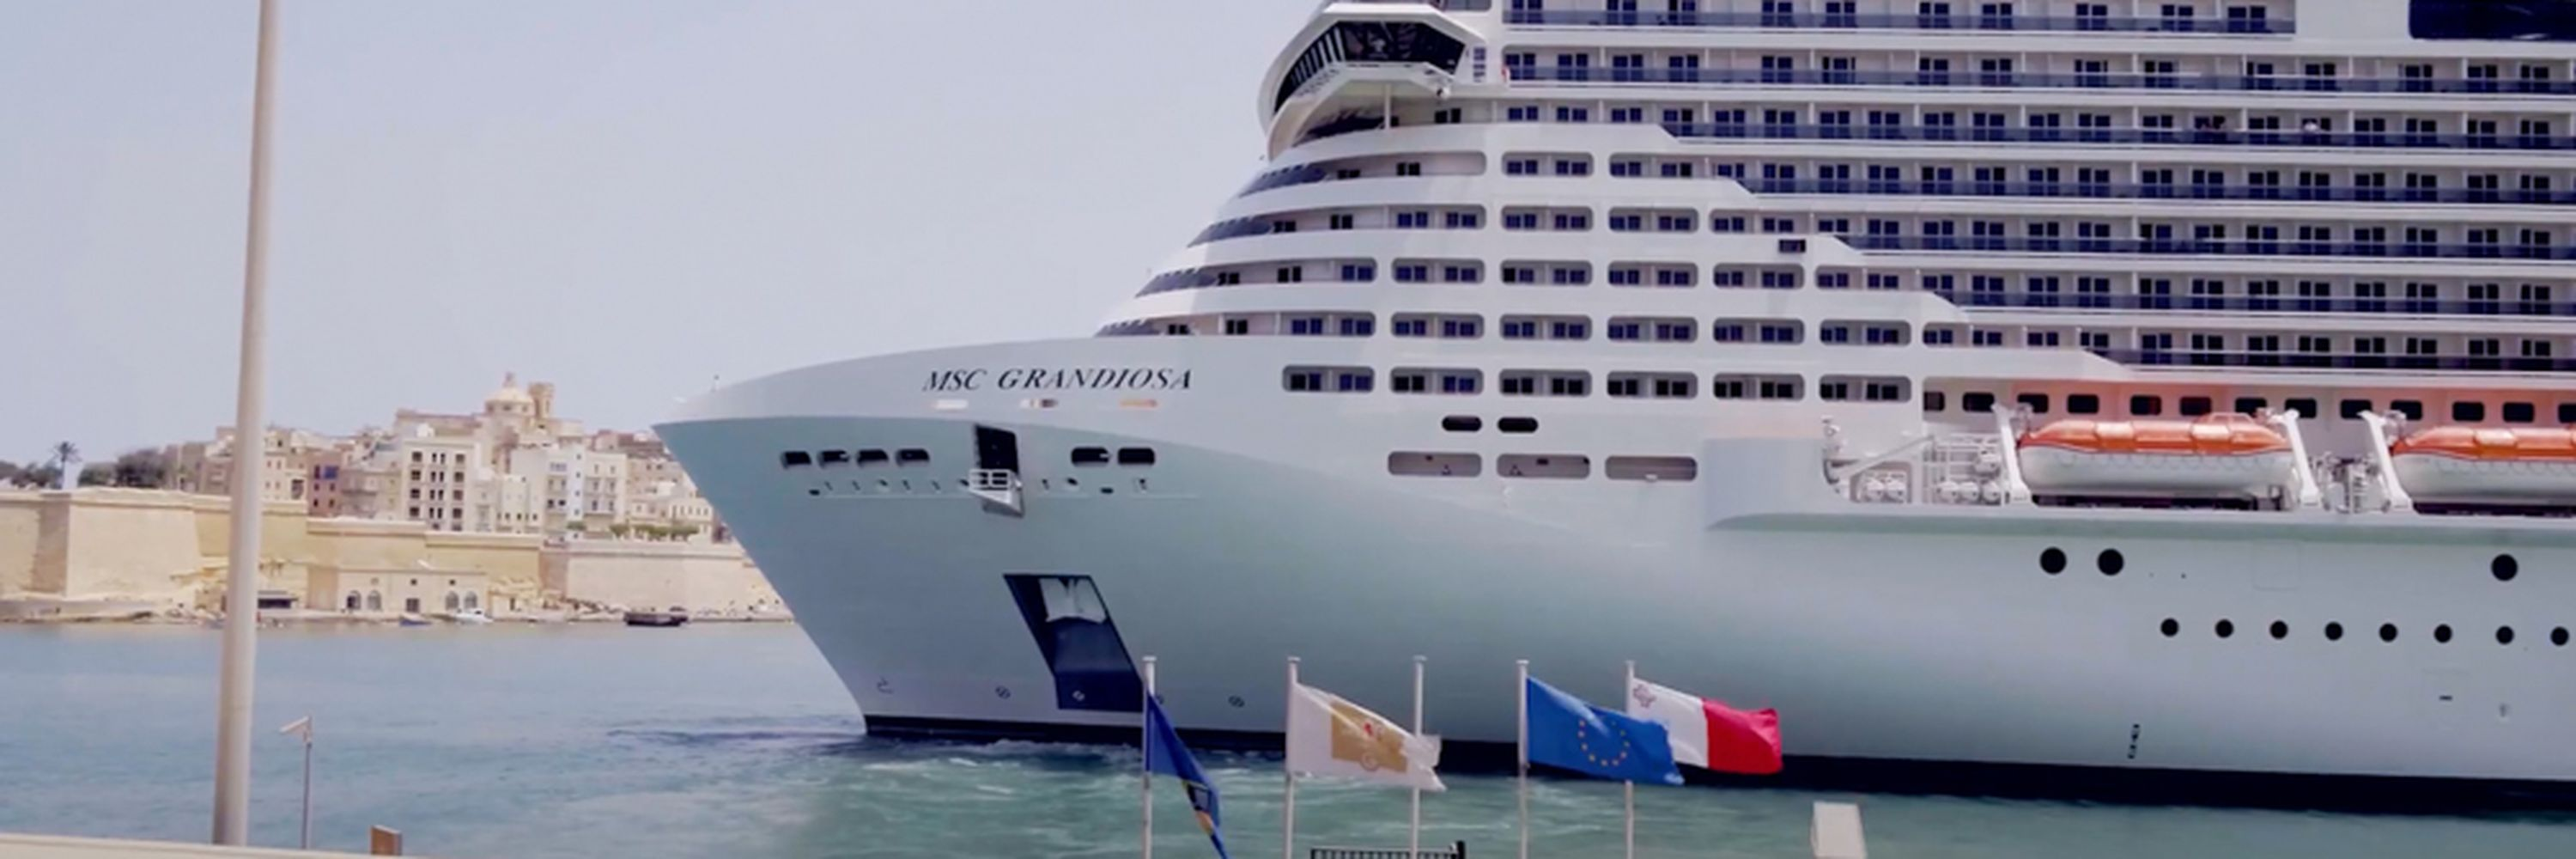 The MSC Grandiosa cruise liner at the Valletta Waterfront in motion blur's commercial